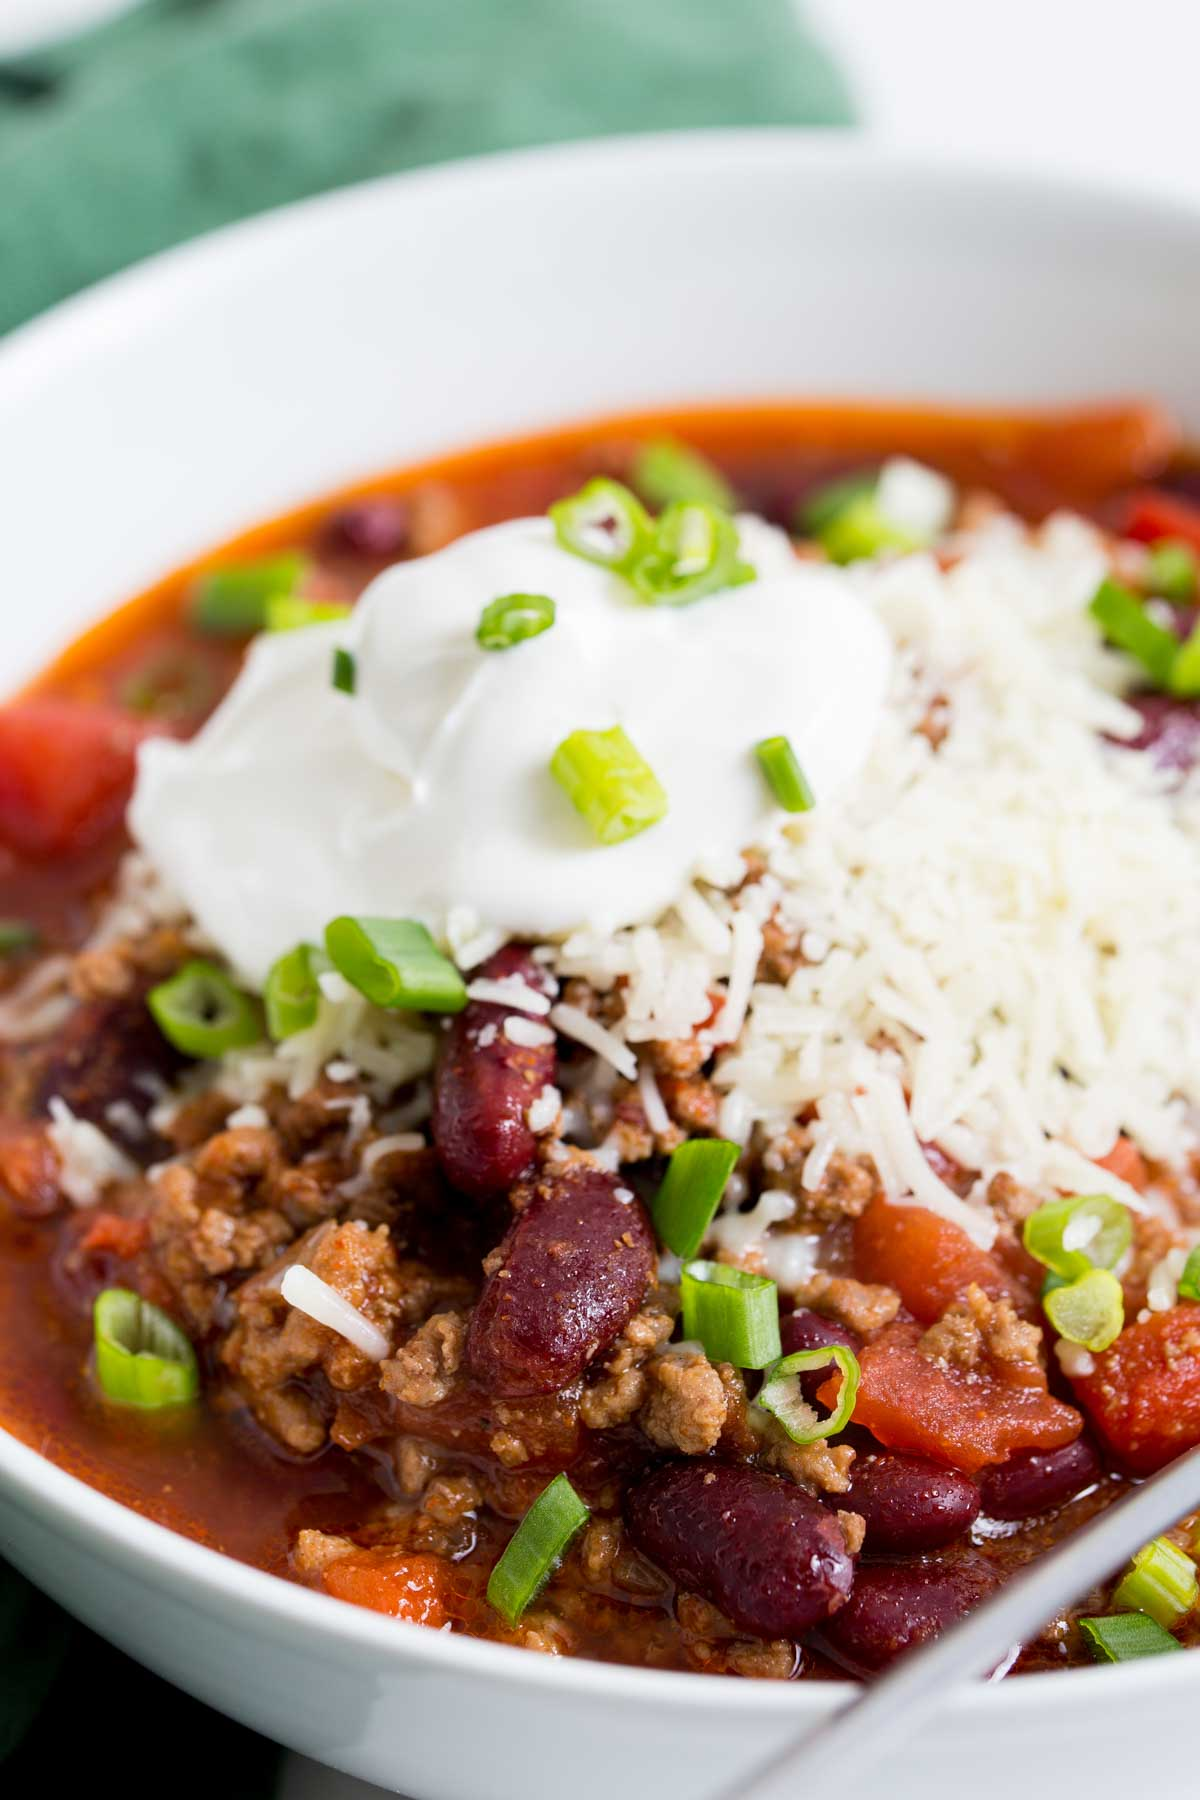 Close up image of crock pot chili in a white bowl with a silver spoon